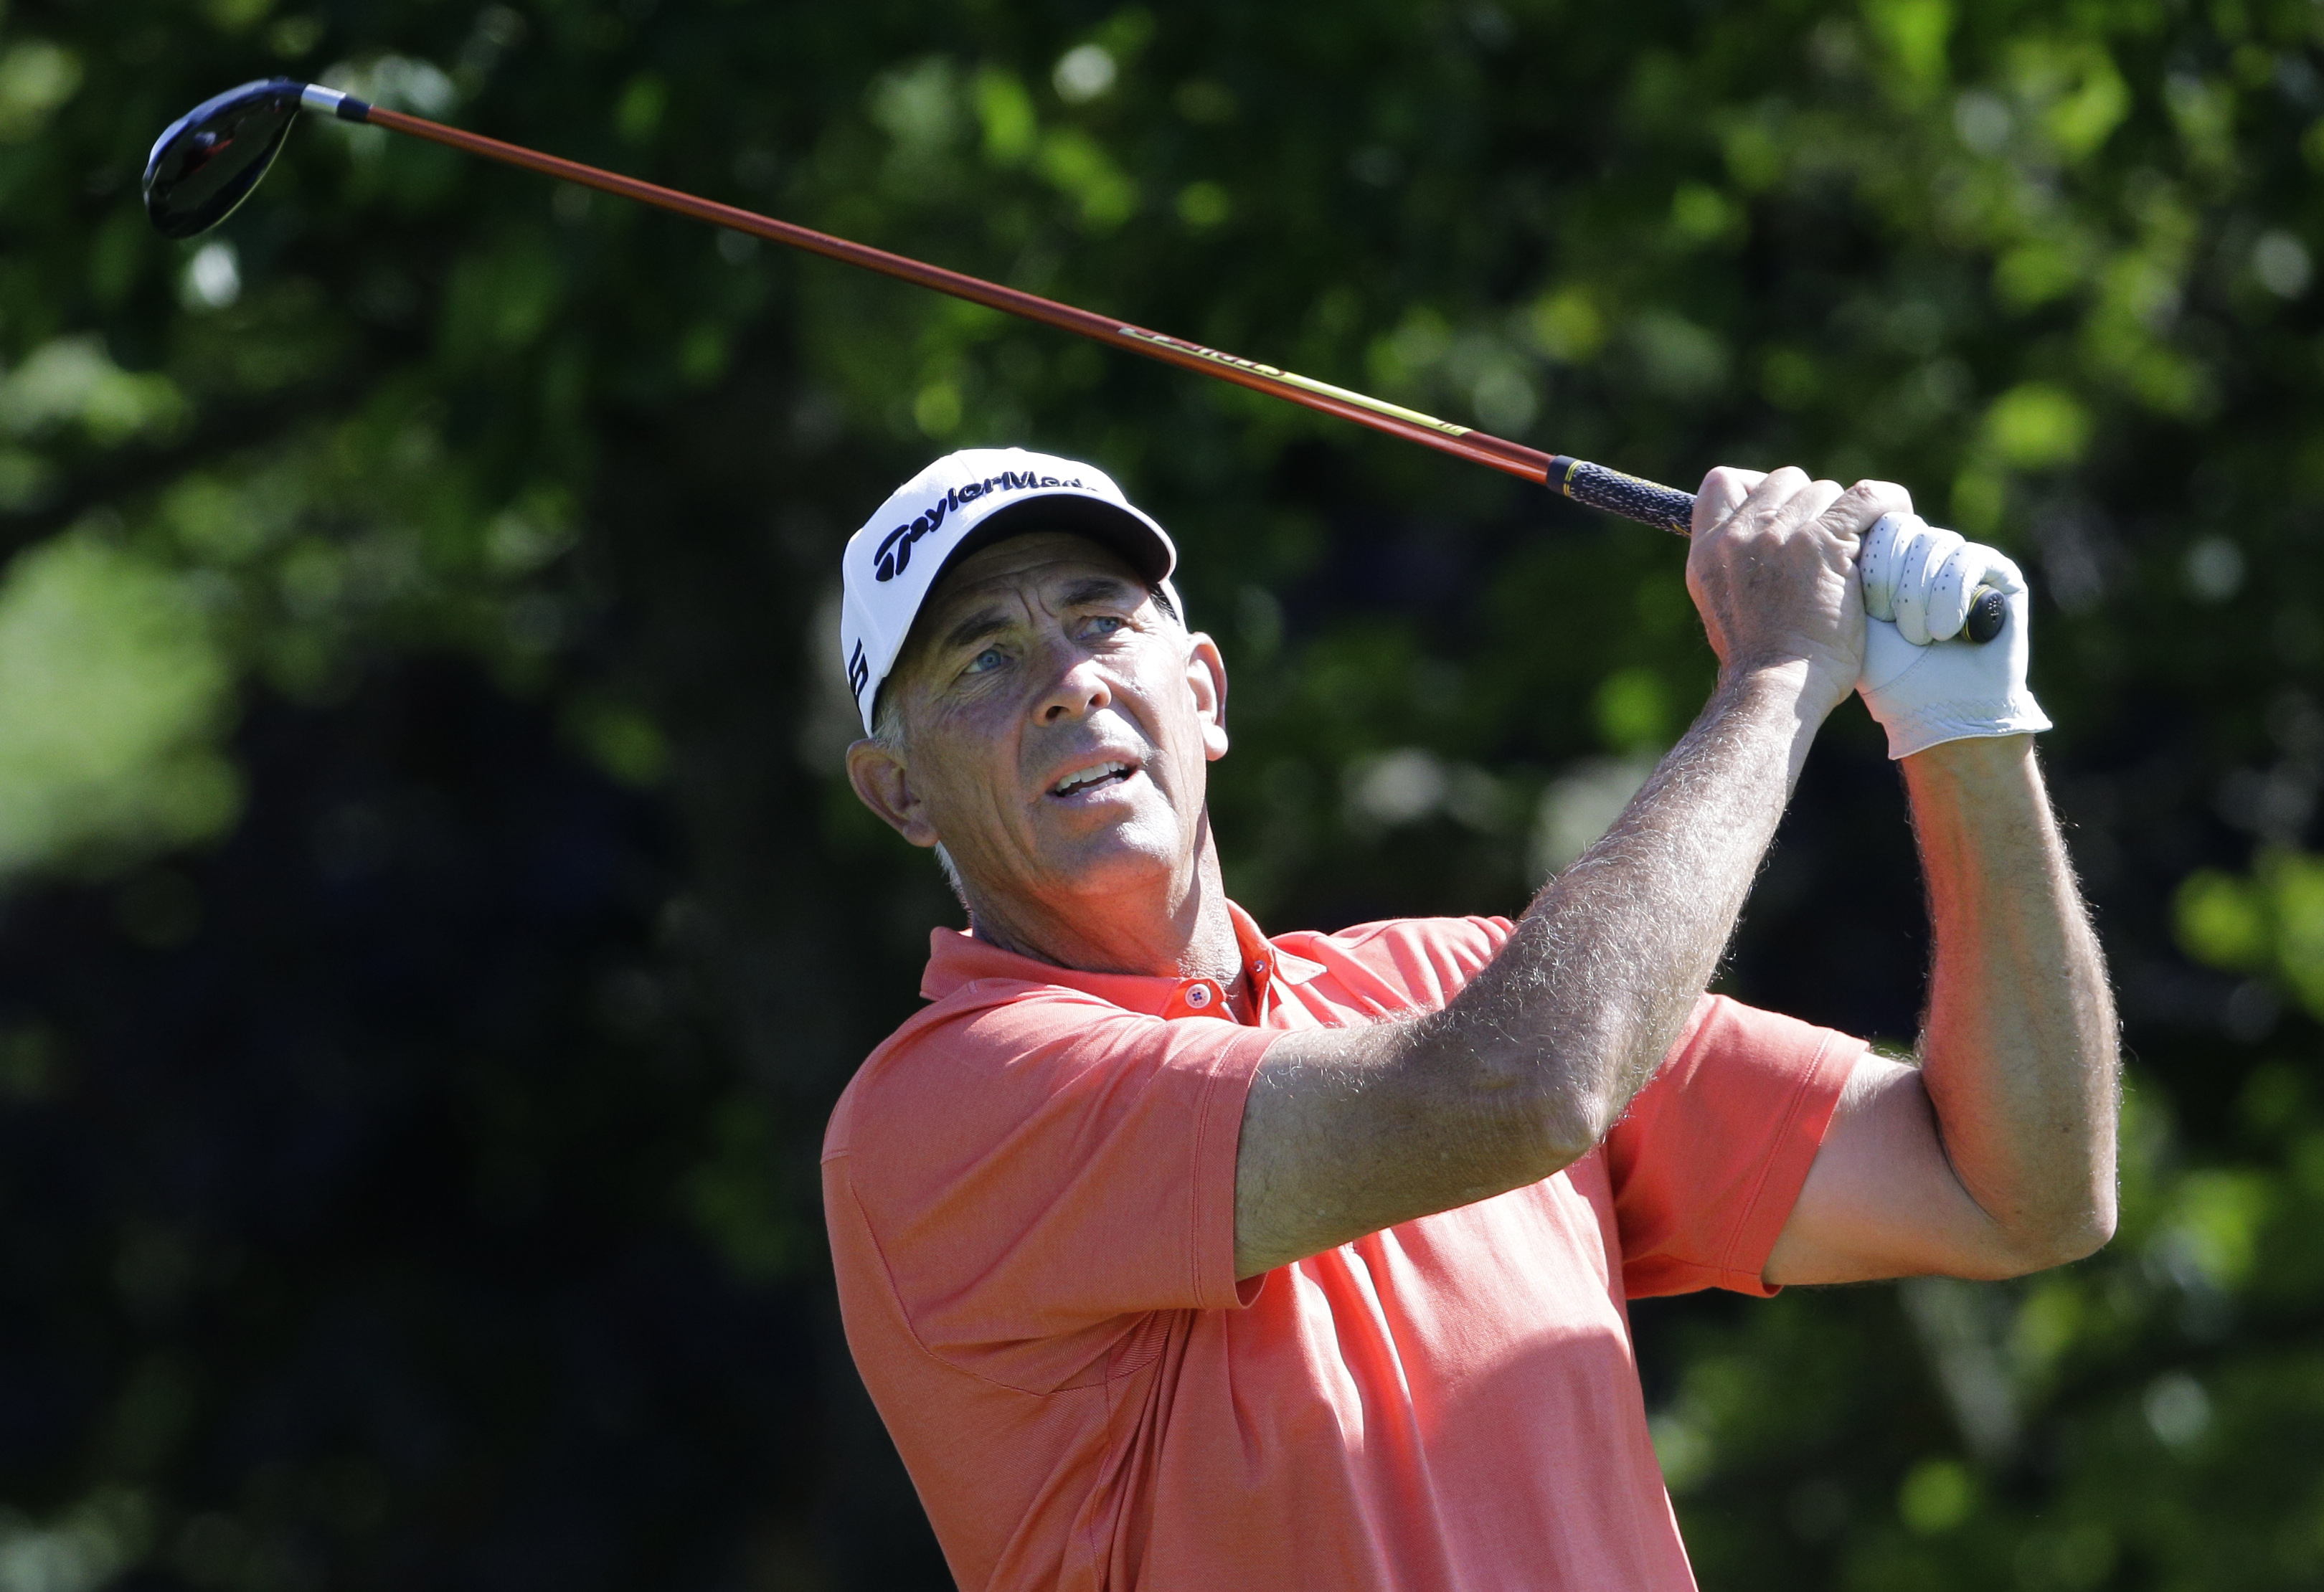 Tom Lehman watches his tee shot on the 13th during the pro-am for the Champions Tour's Encompass Championship golf tournament Thursday, July 9, 2015, in Glenview, Ill. (AP Photo/Nam Y. Huh)